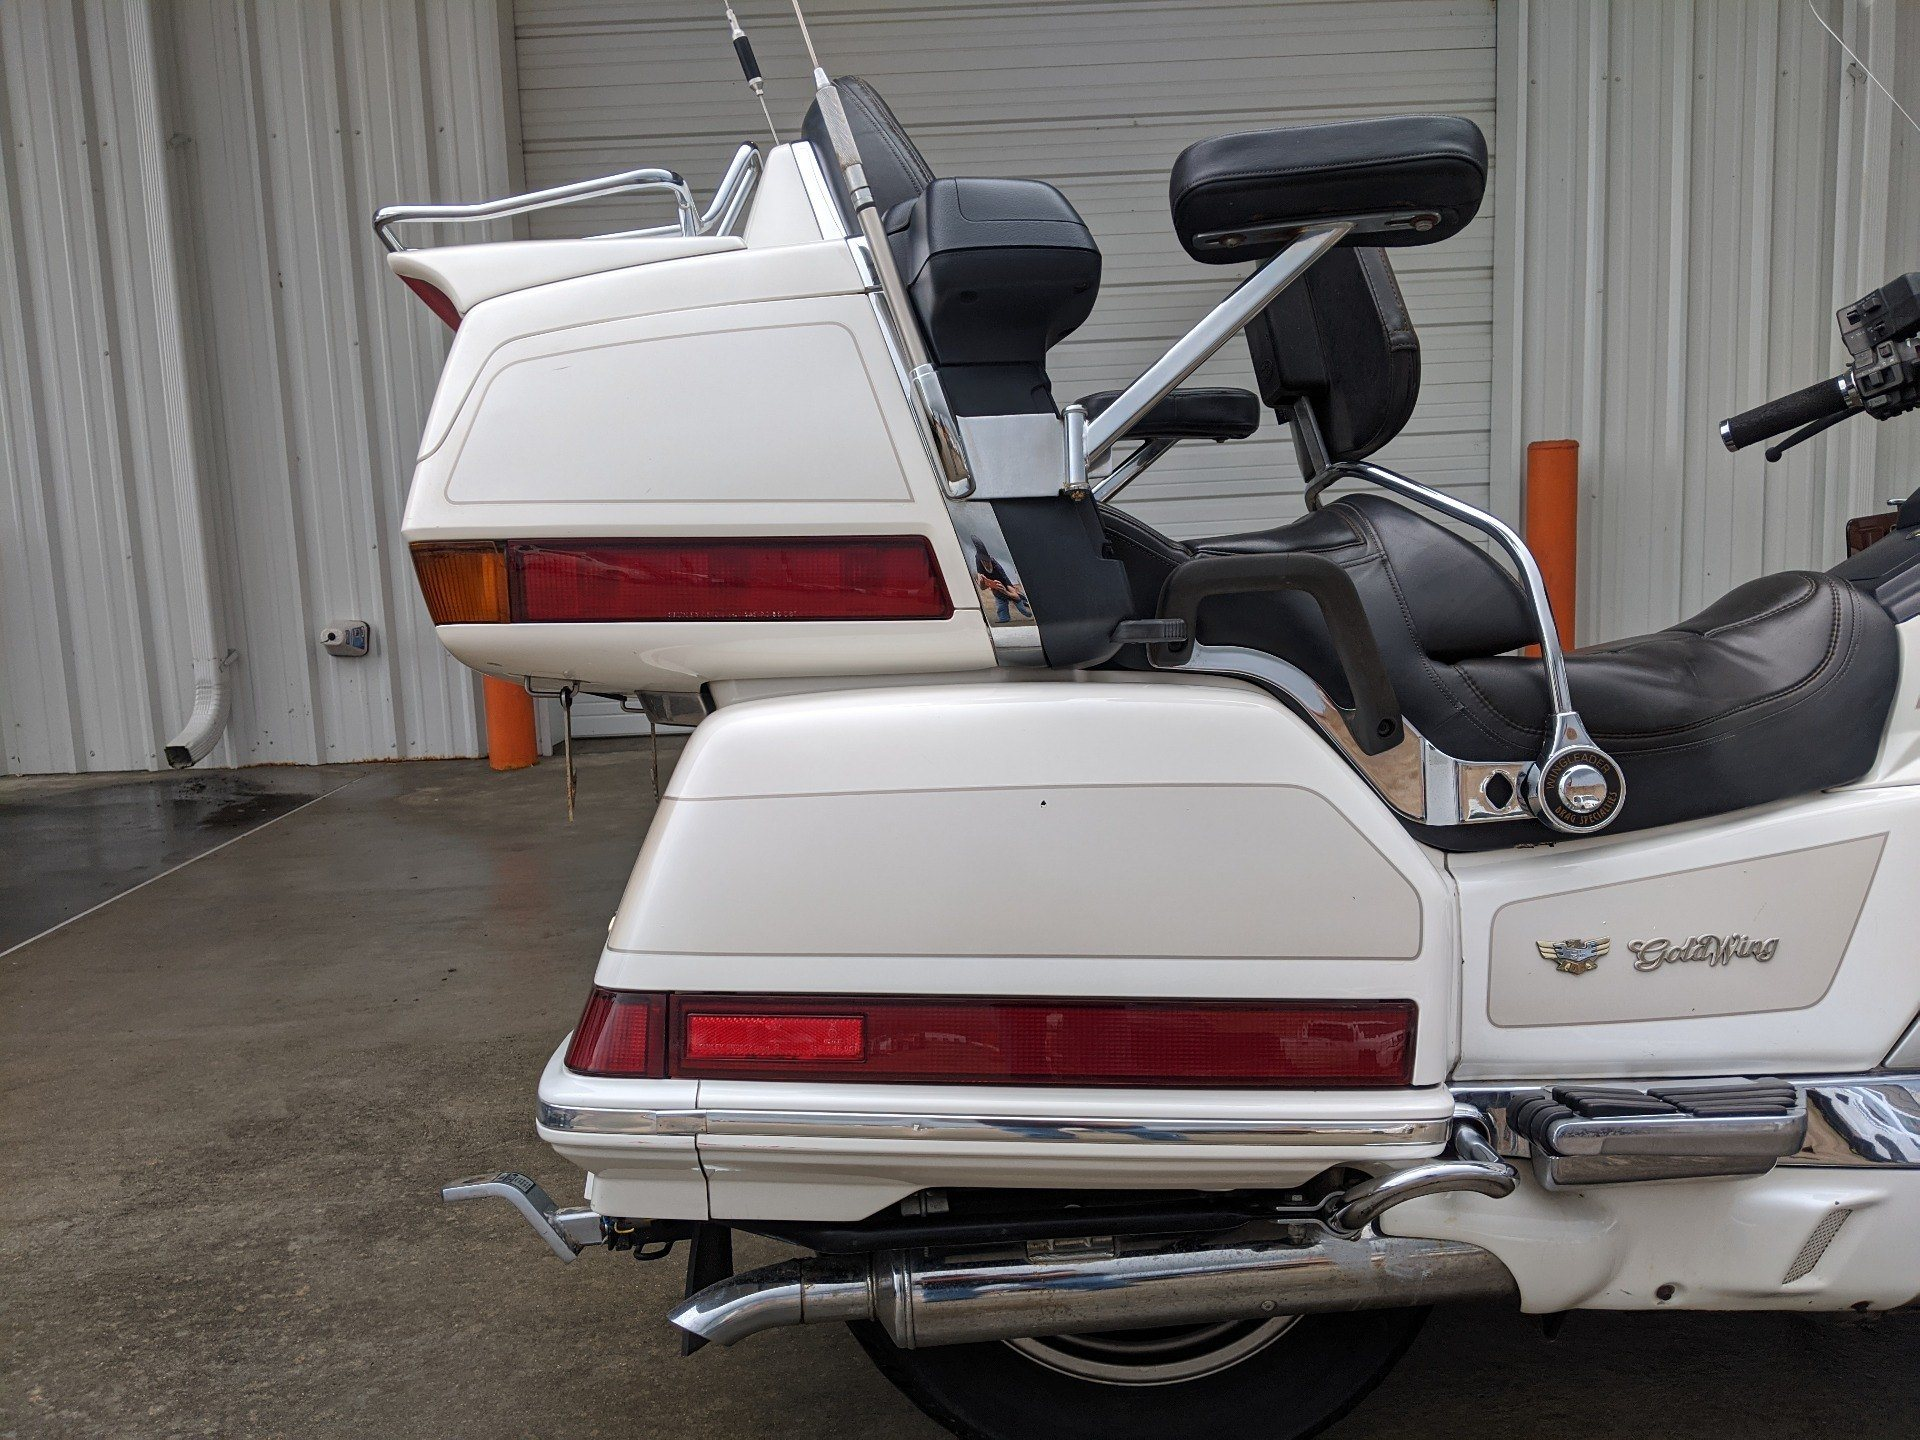 1998 Honda Gold Wing SE in Monroe, Louisiana - Photo 5